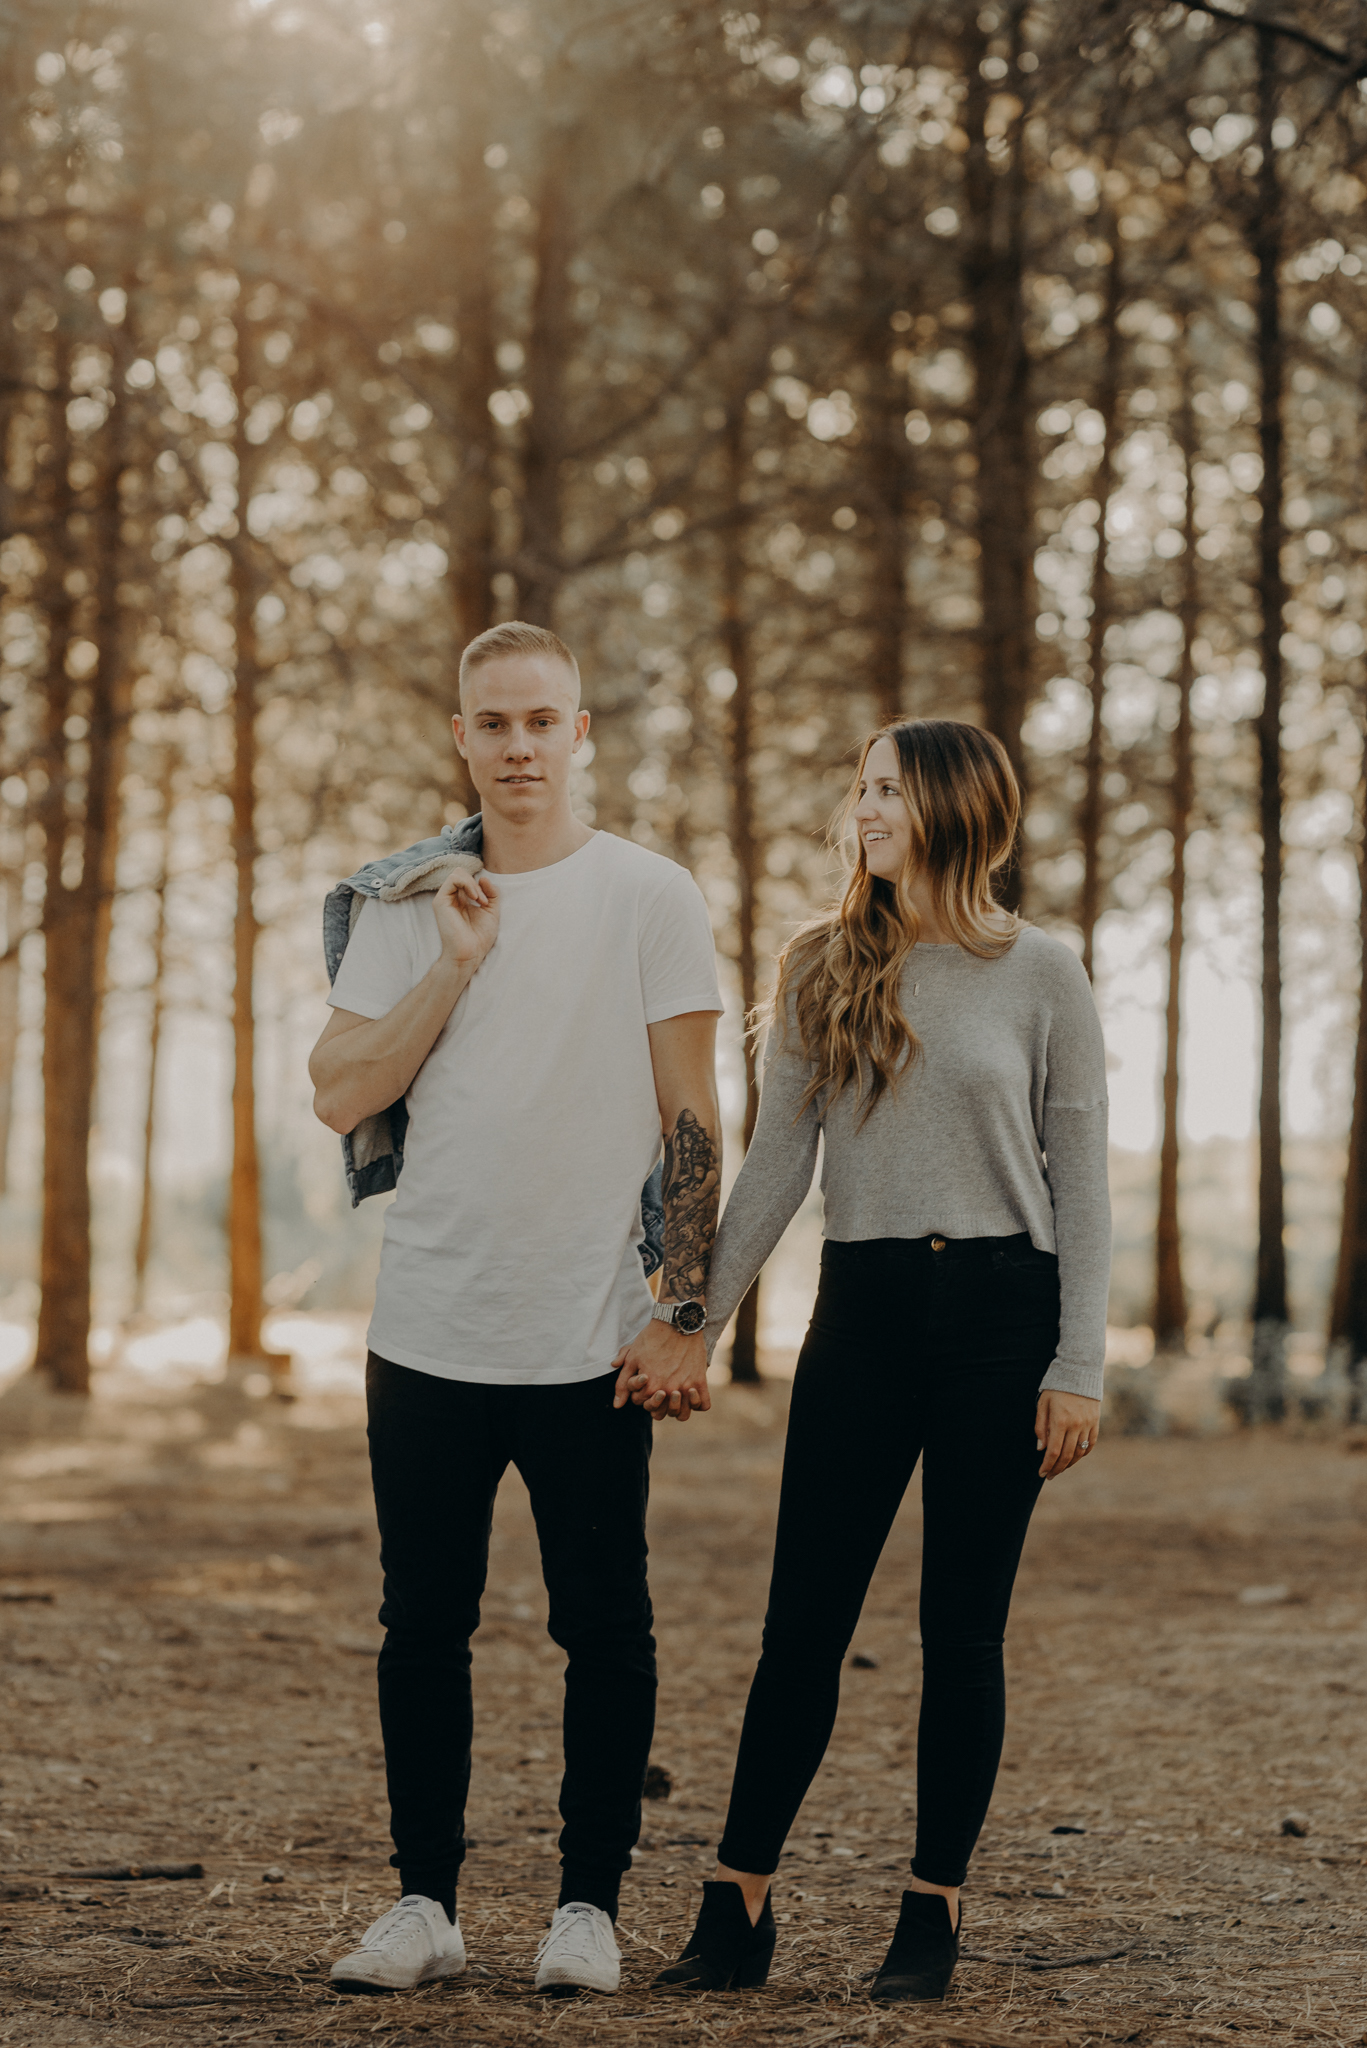 Isaiah + Taylor Photography - Los Angeles Forest Engagement, Laid-back Wedding Photographer-086.jpg